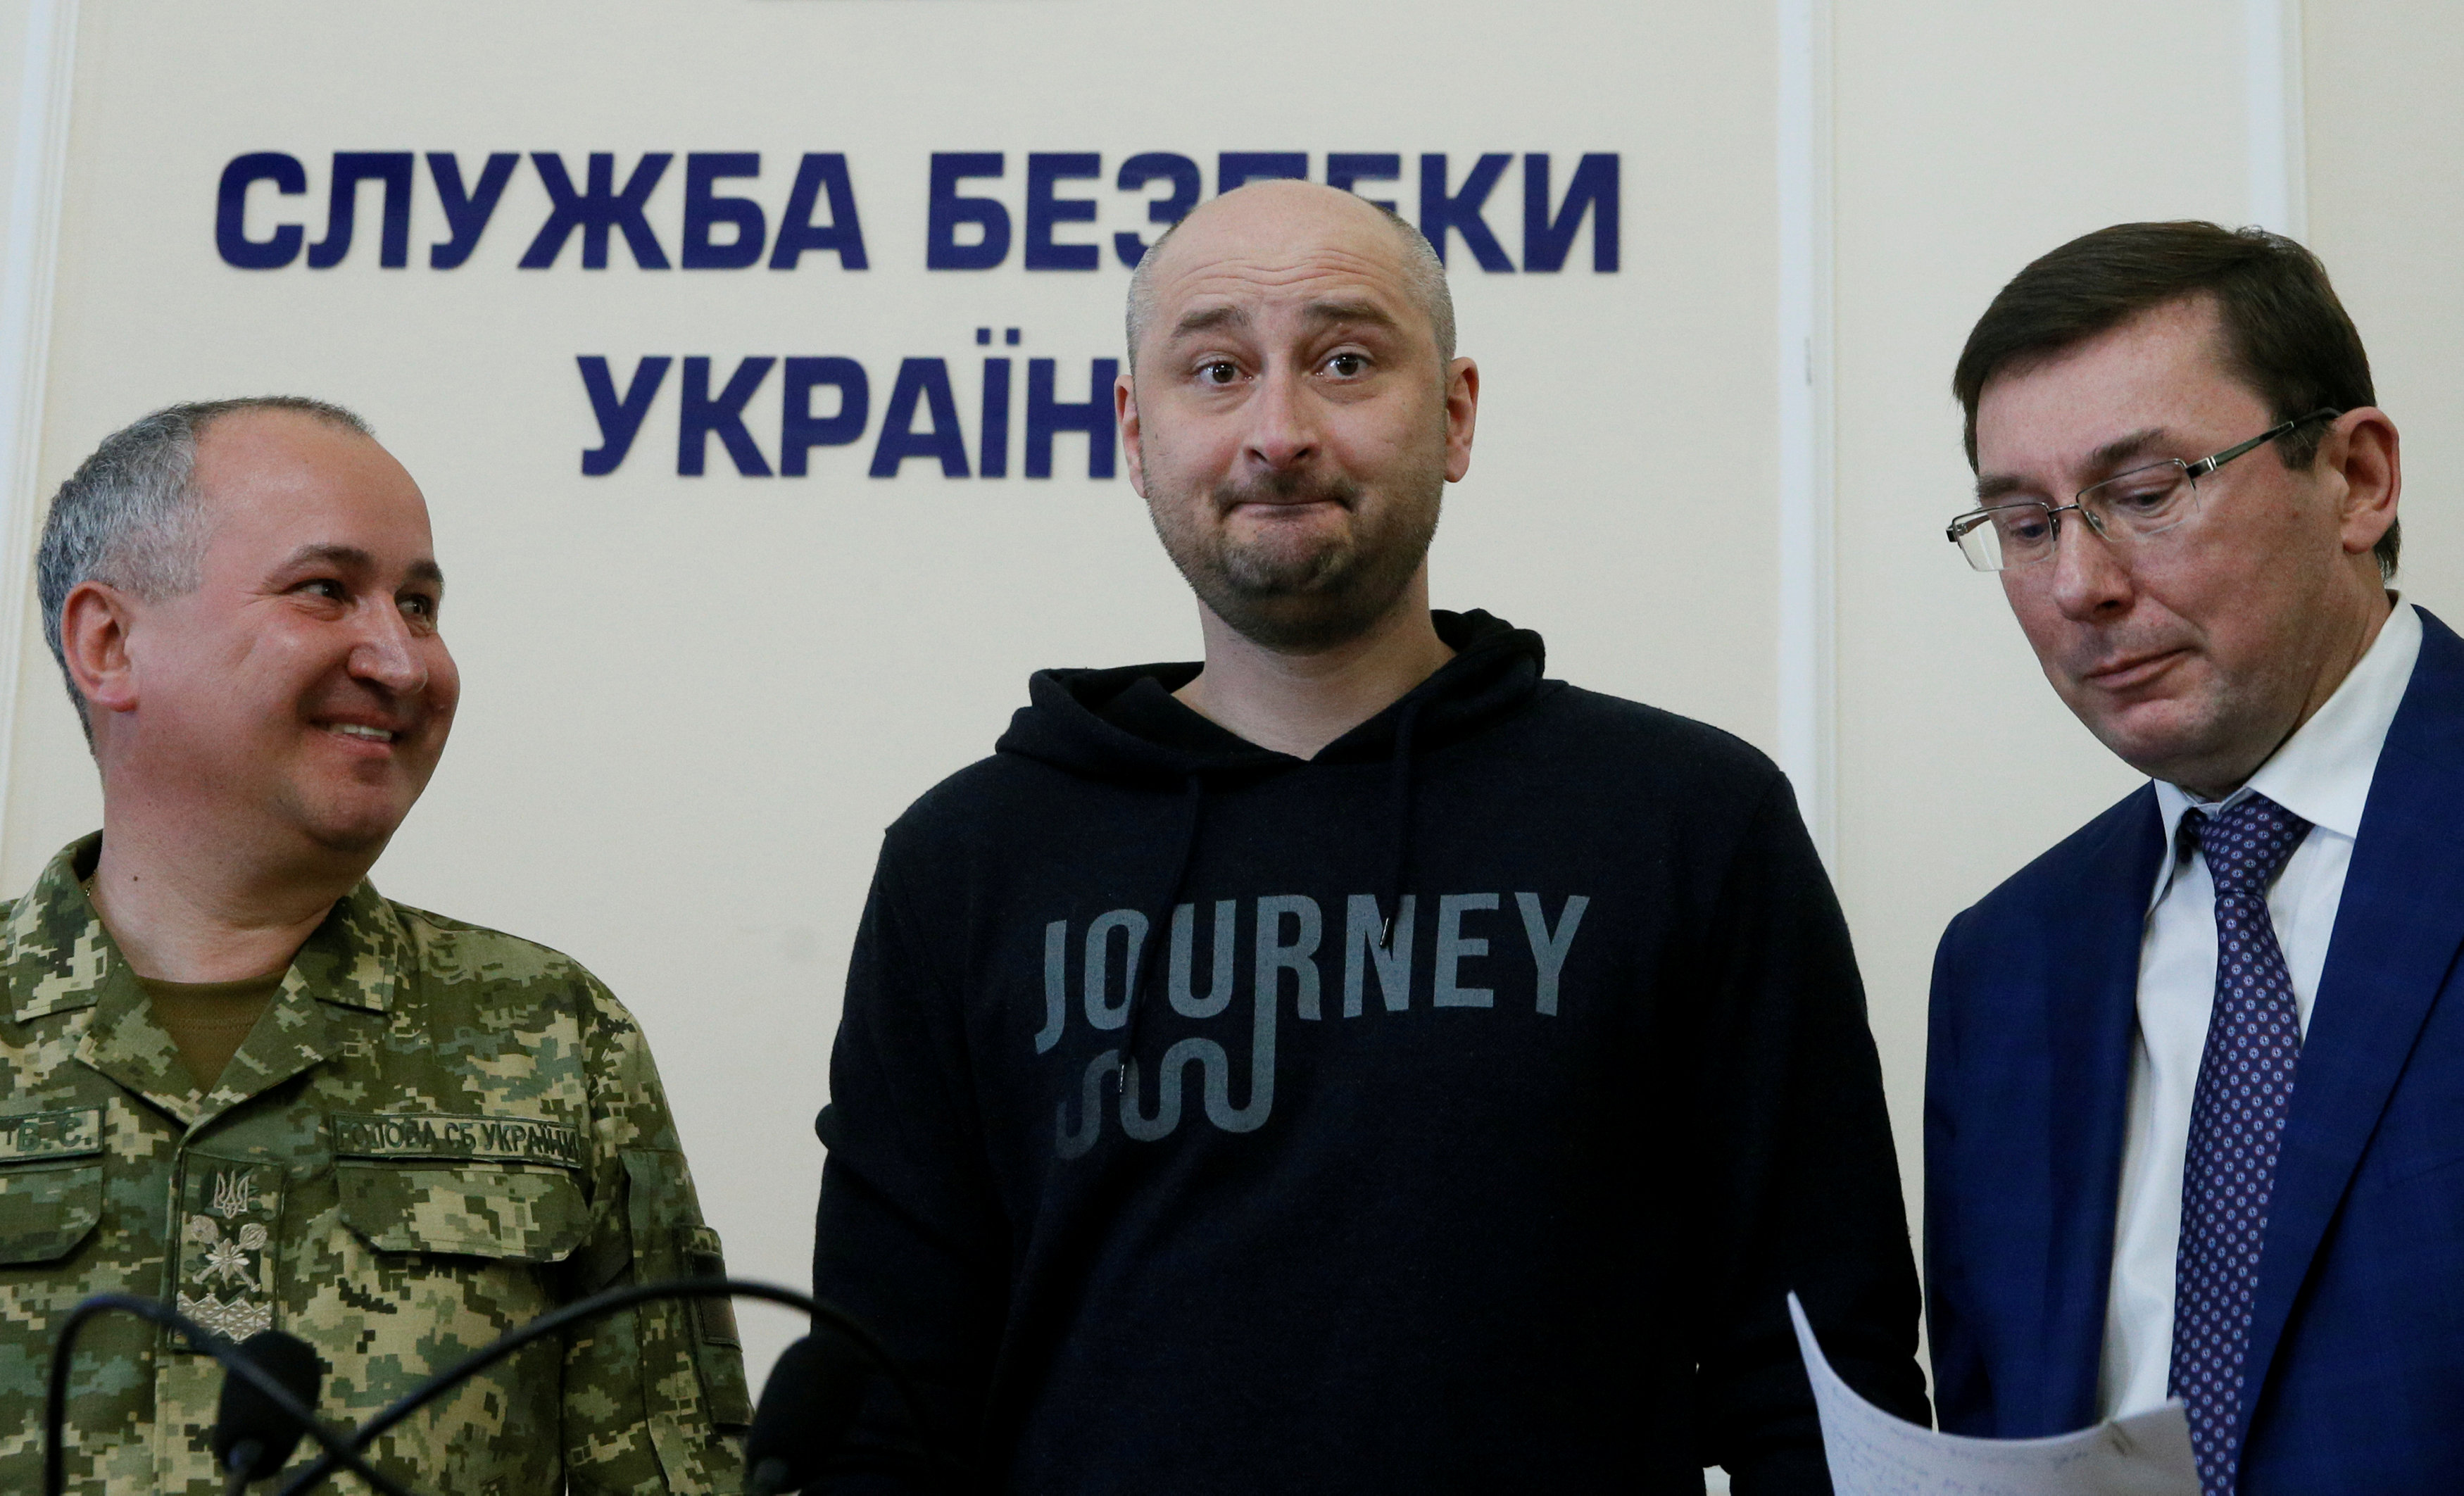 Russian journalist Arkady Babchenko (C), who was reported murdered in the Ukrainian capital on May 29, Ukrainian Prosecutor General Yuriy Lutsenko (R) and head of the state security service (SBU) Vasily Gritsak attend a news briefing in Kiev, Ukraine May 30, 2018. REUTERS/Valentyn Ogirenko